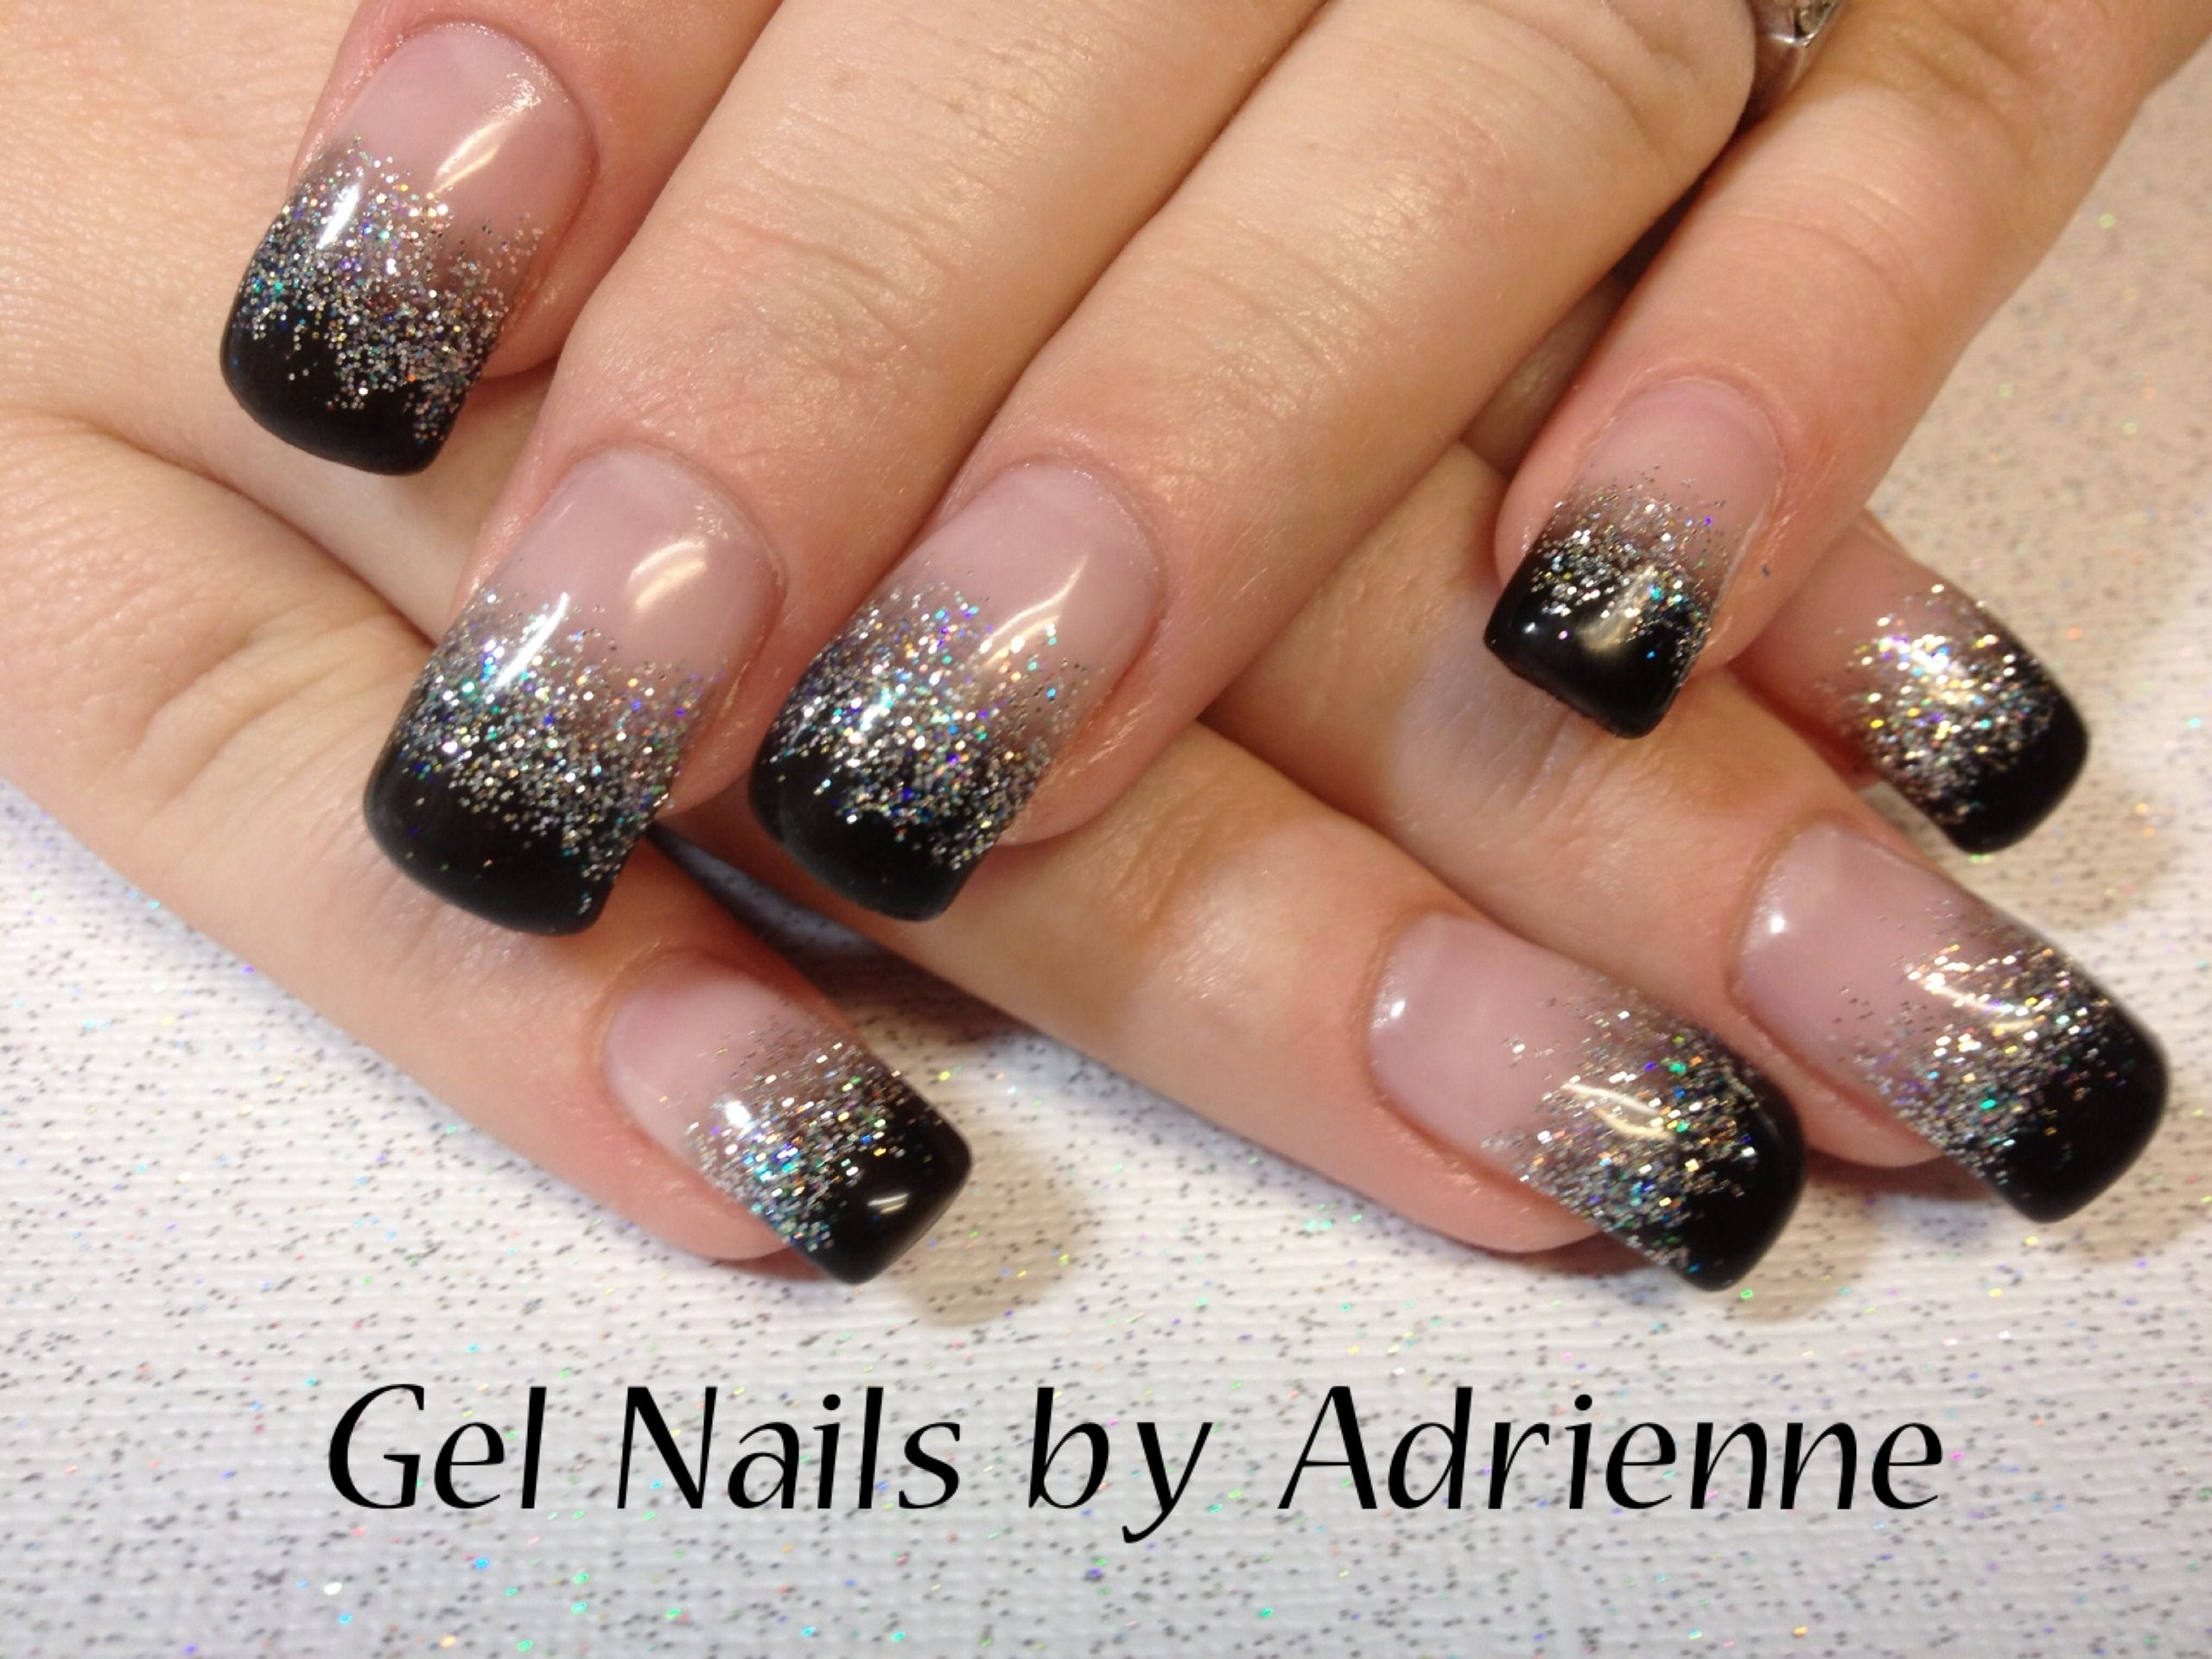 Black & Diamond Glitter gel | Gel Nails by Adrienne | Pinterest ...